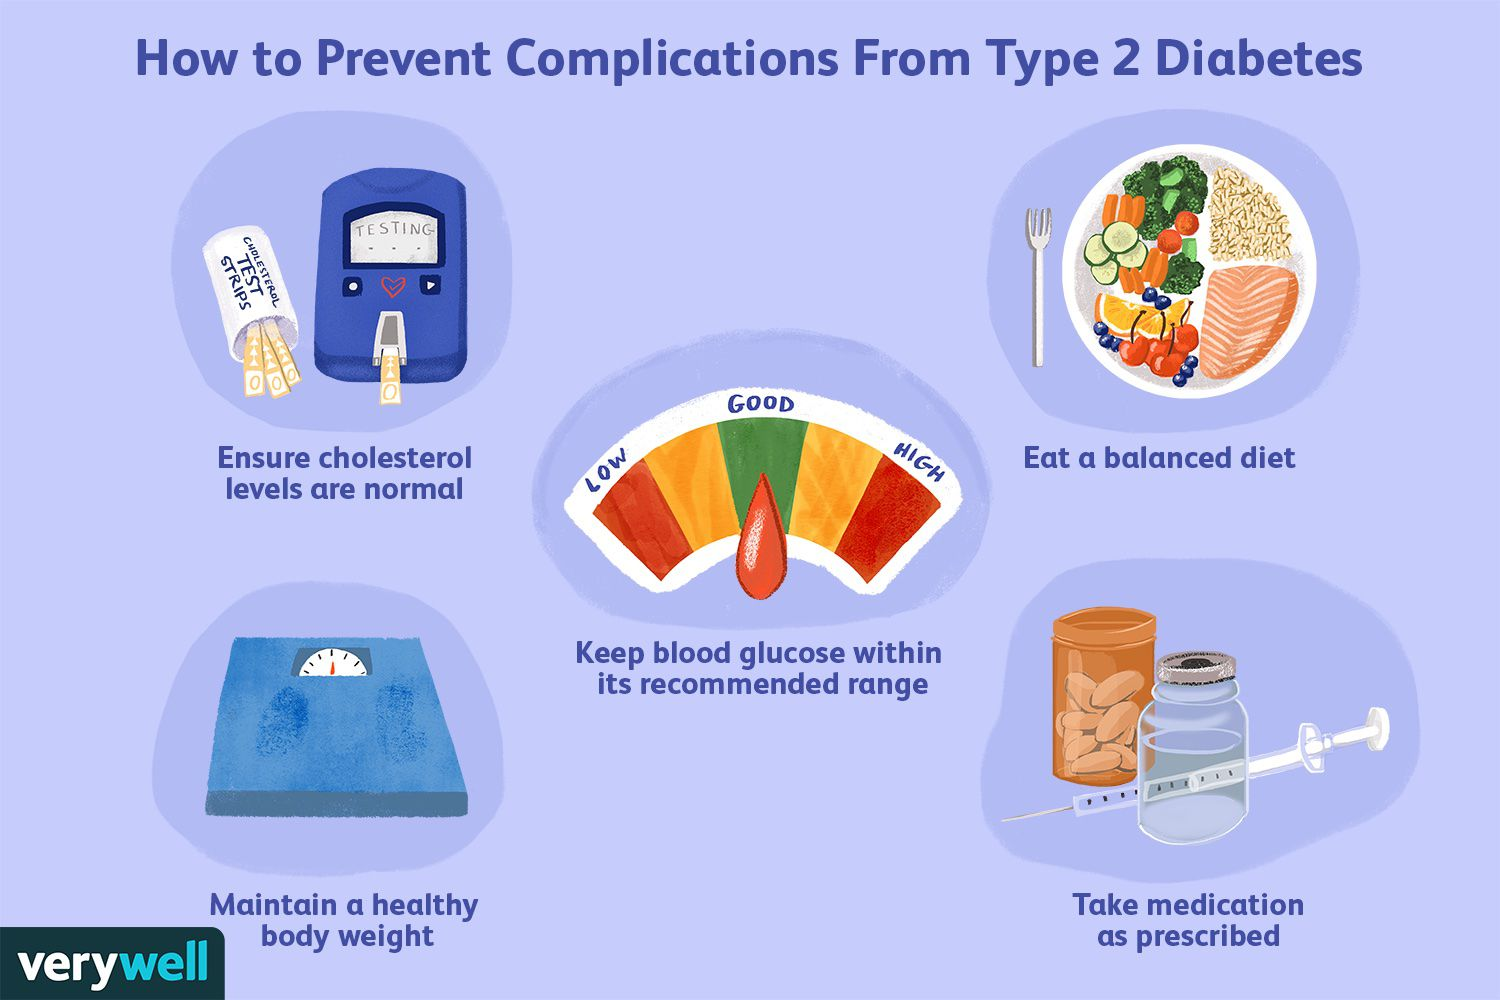 How to Prevent Complications from Type 2 Diabetes